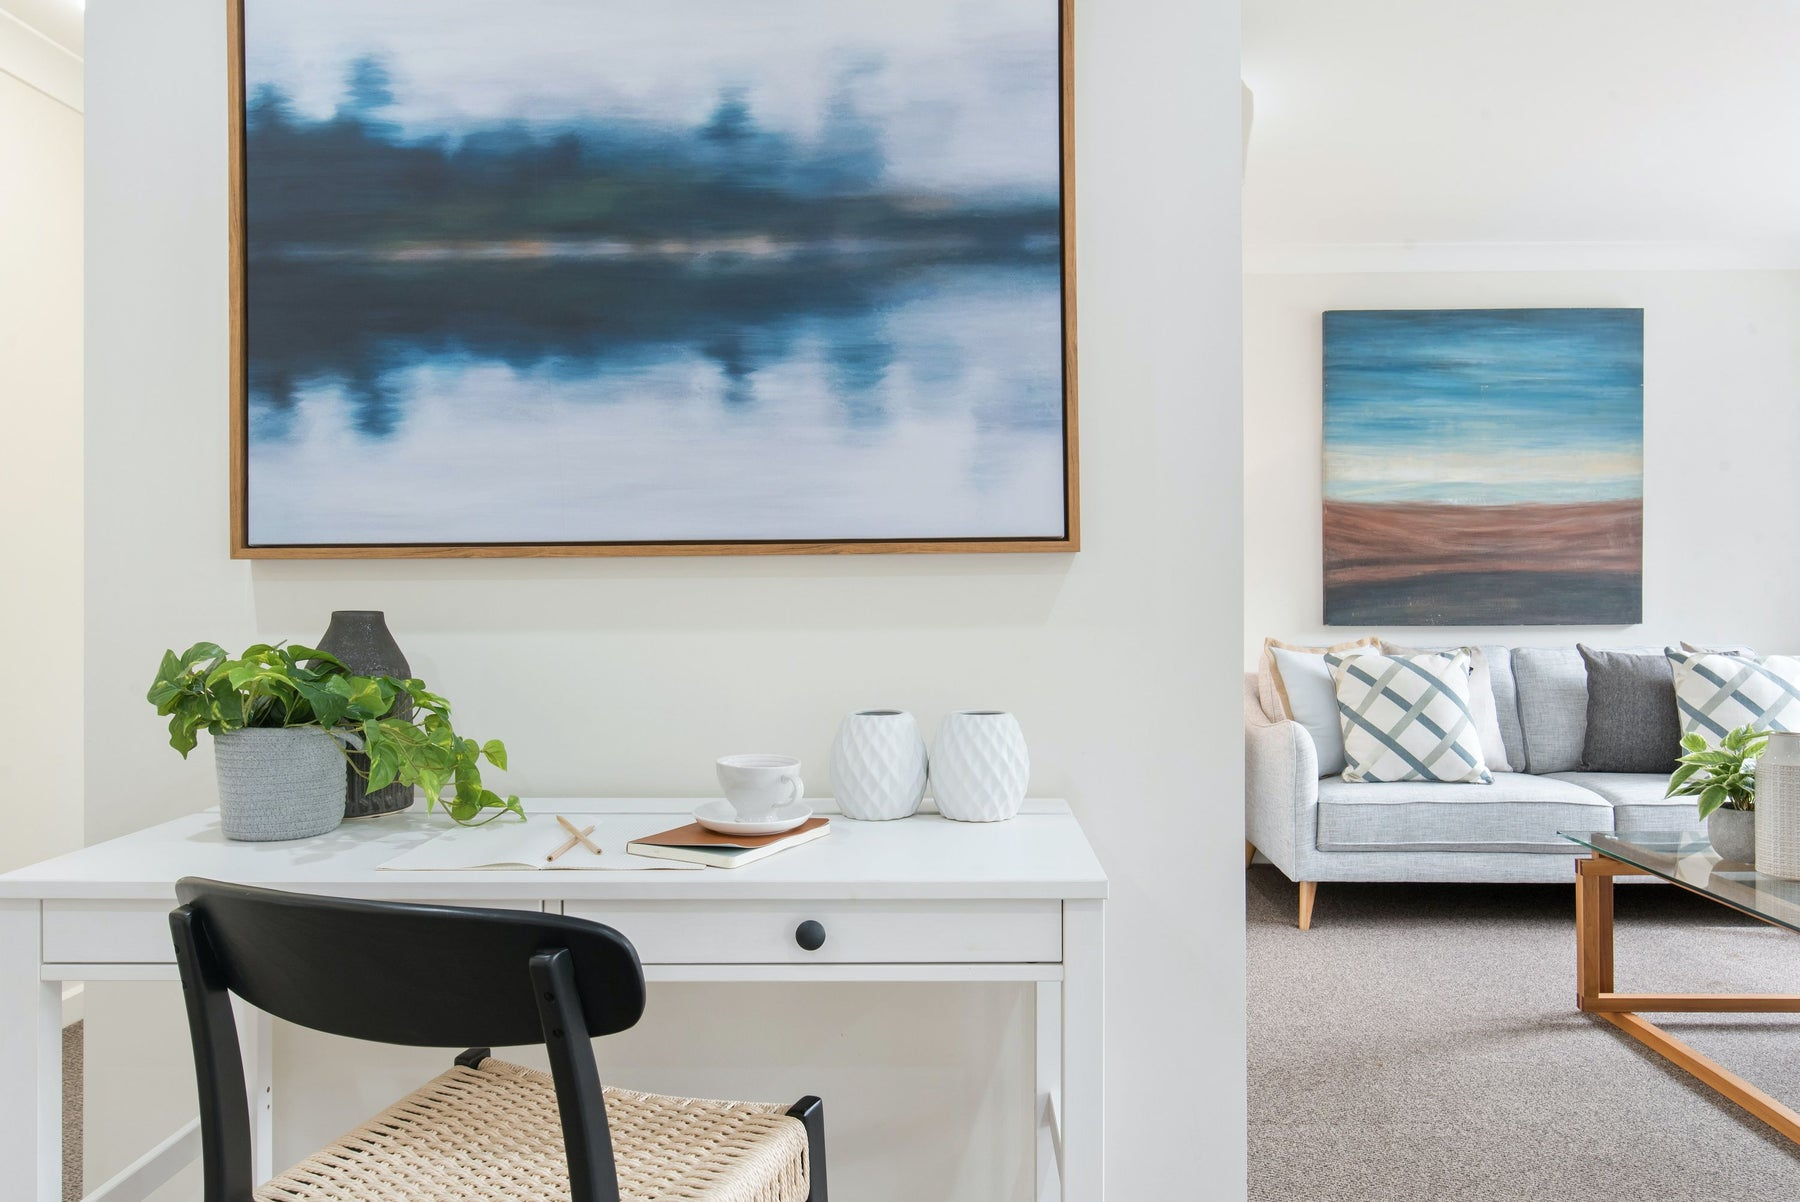 How to add art to your space